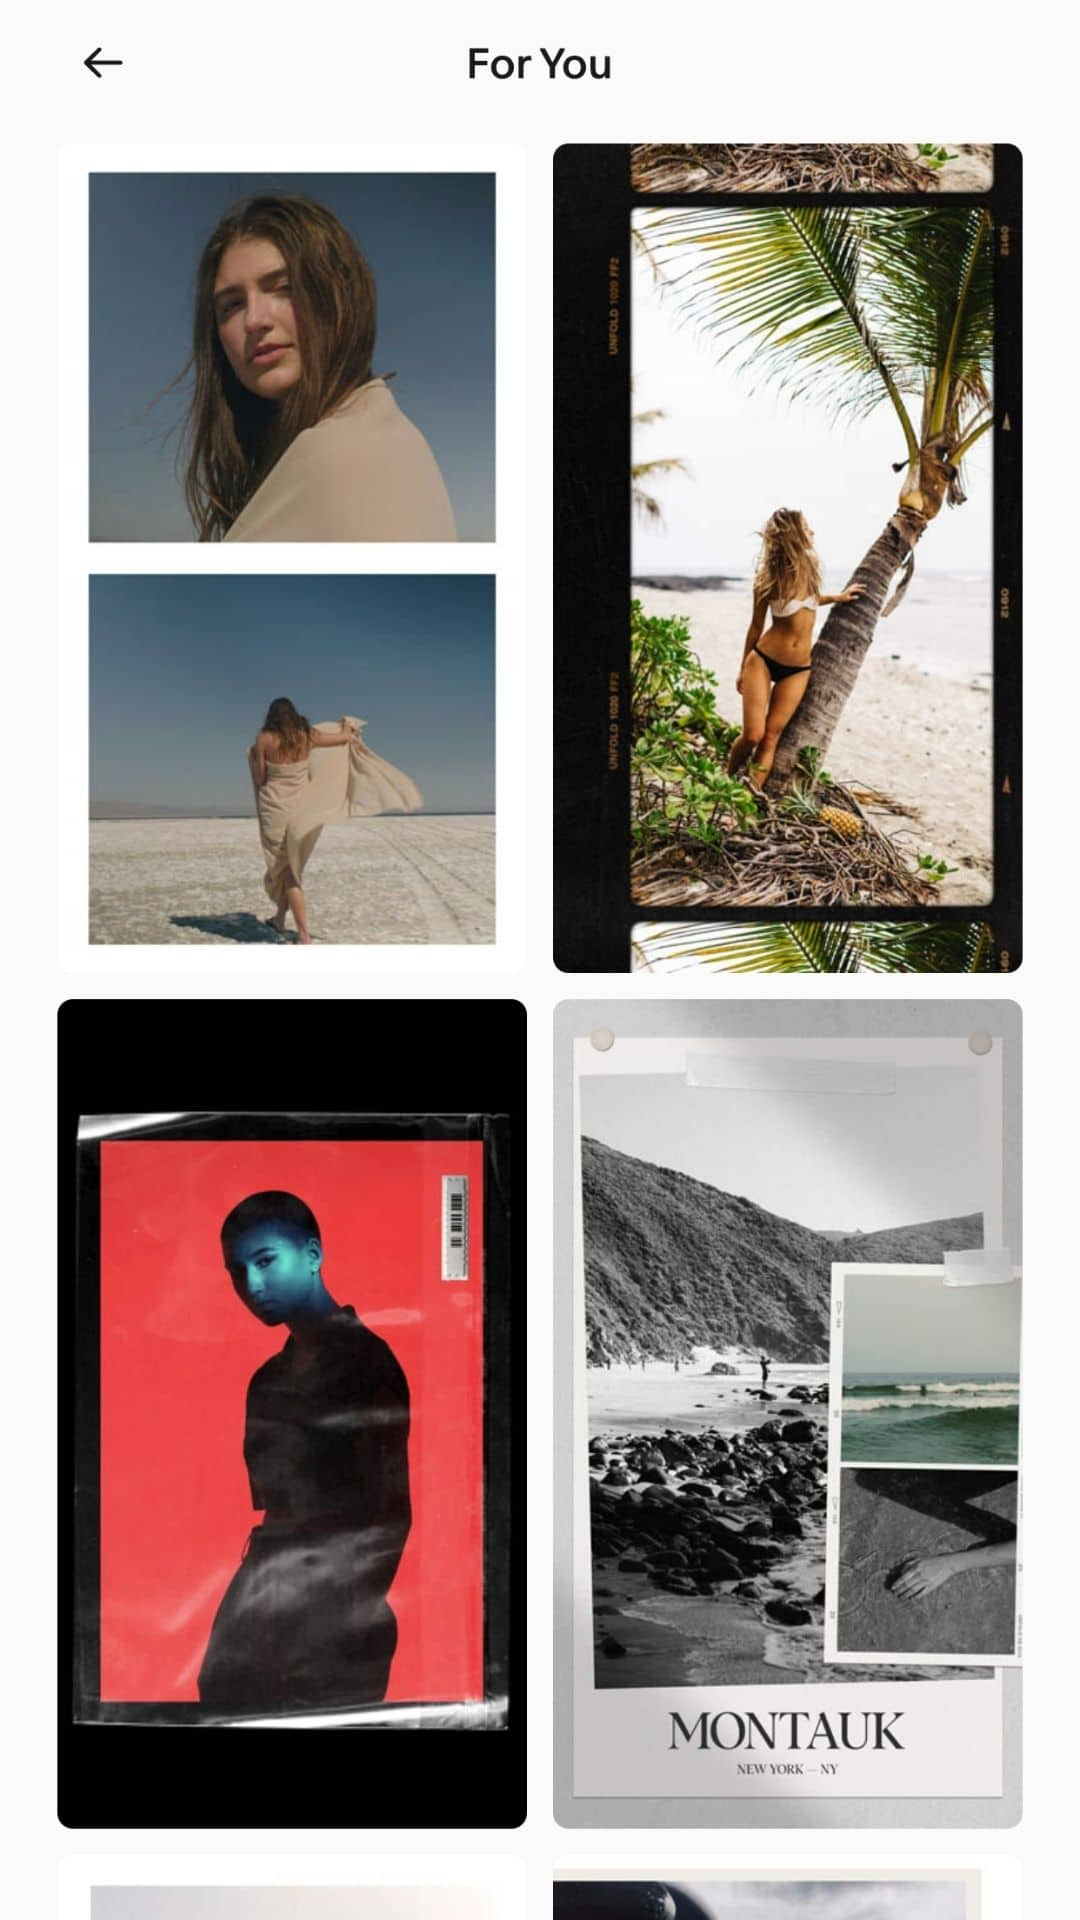 7 IG Apps - Unfold Story templates